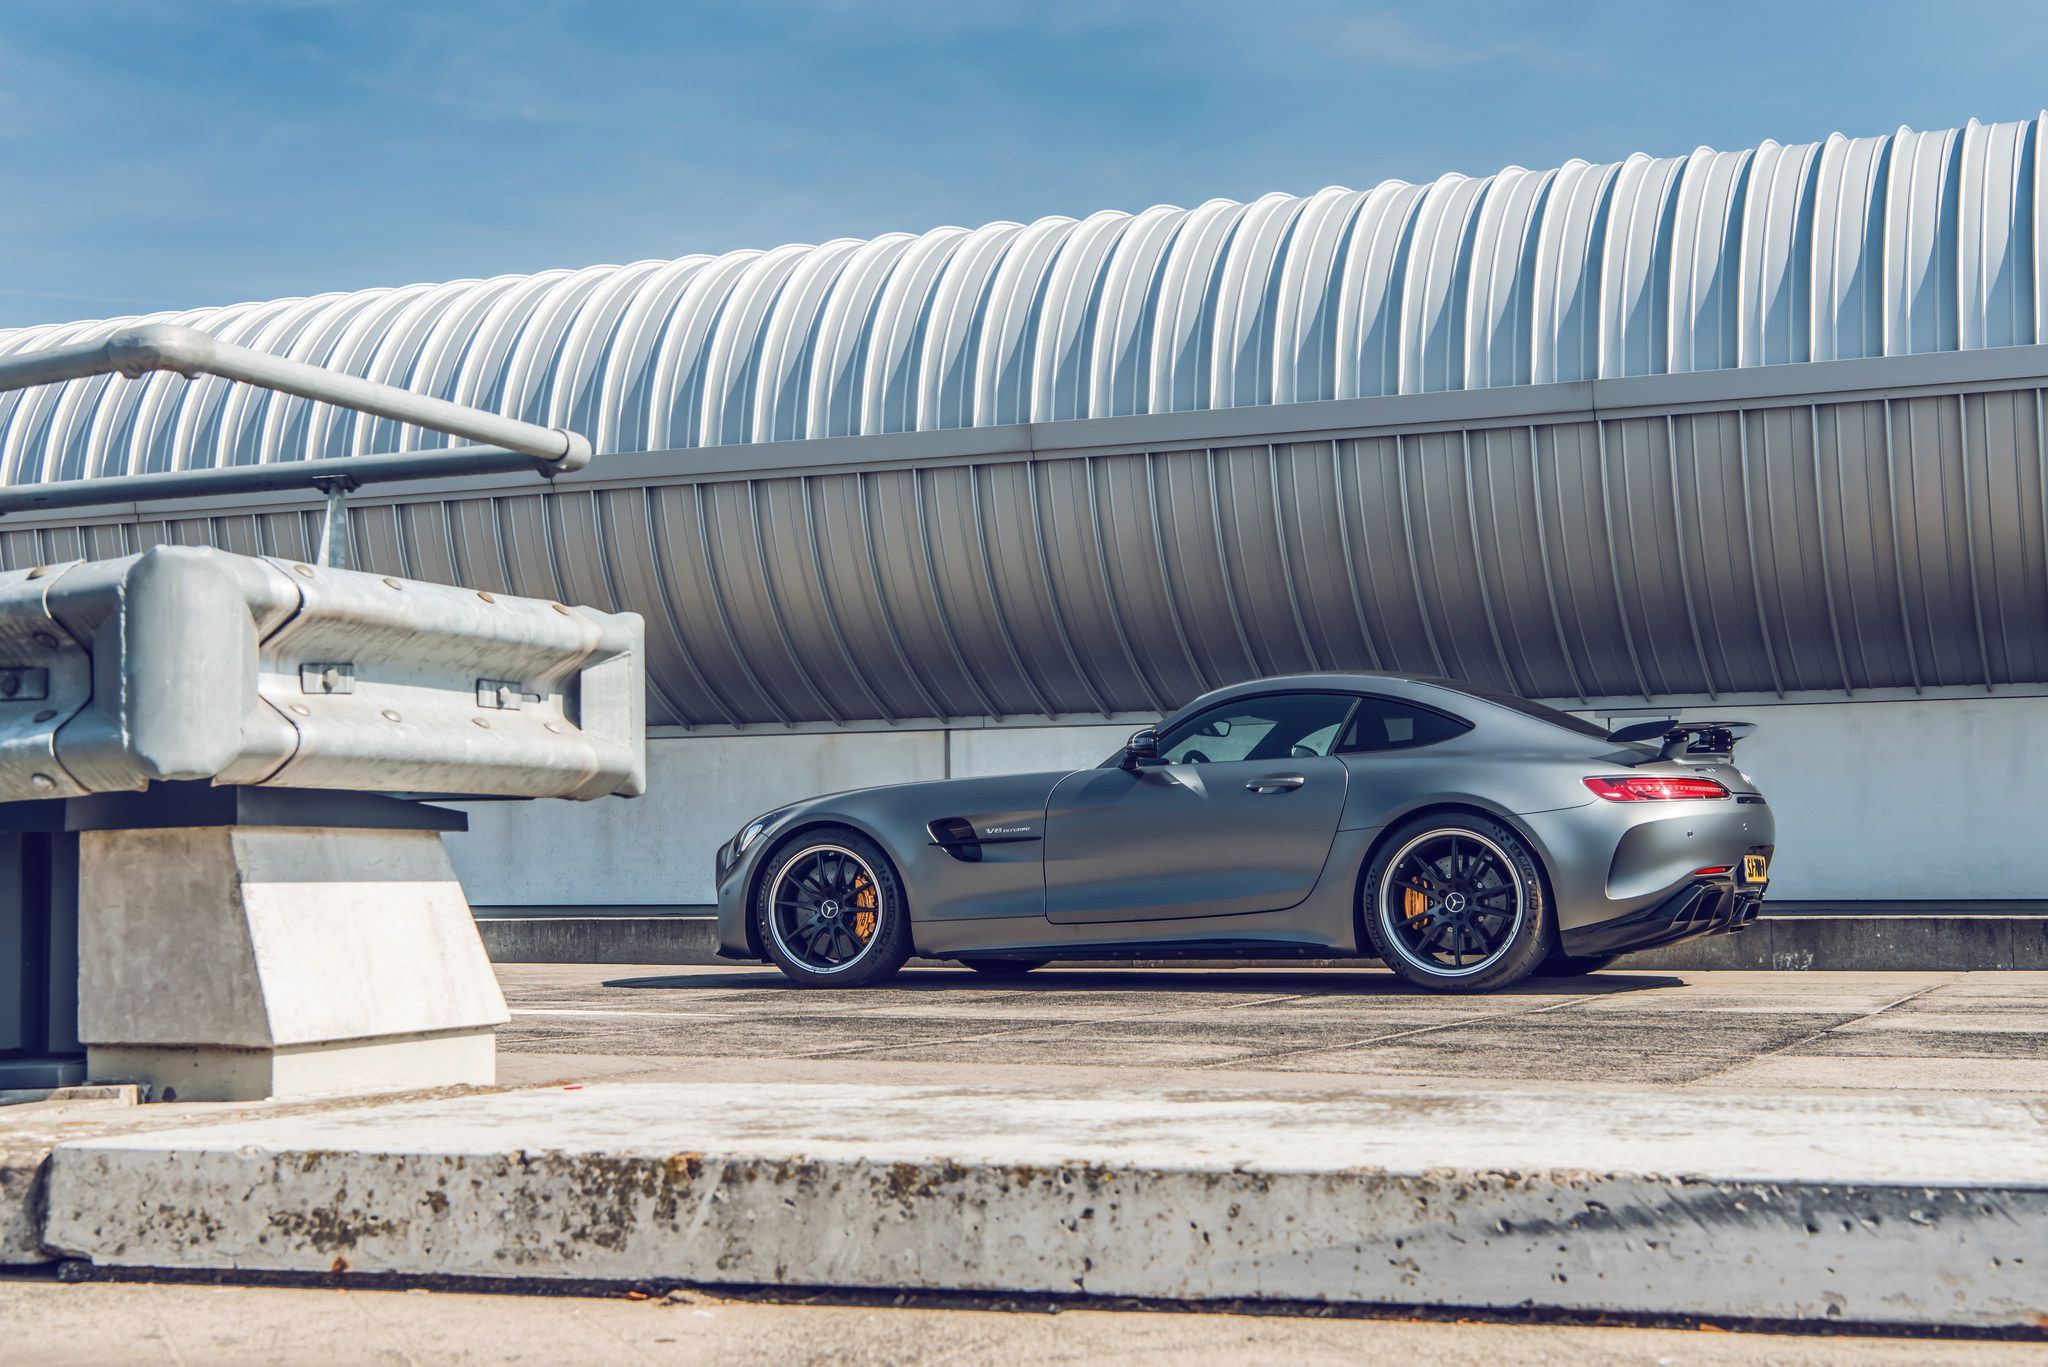 grey Mercedes-Benz AMG GT R side view